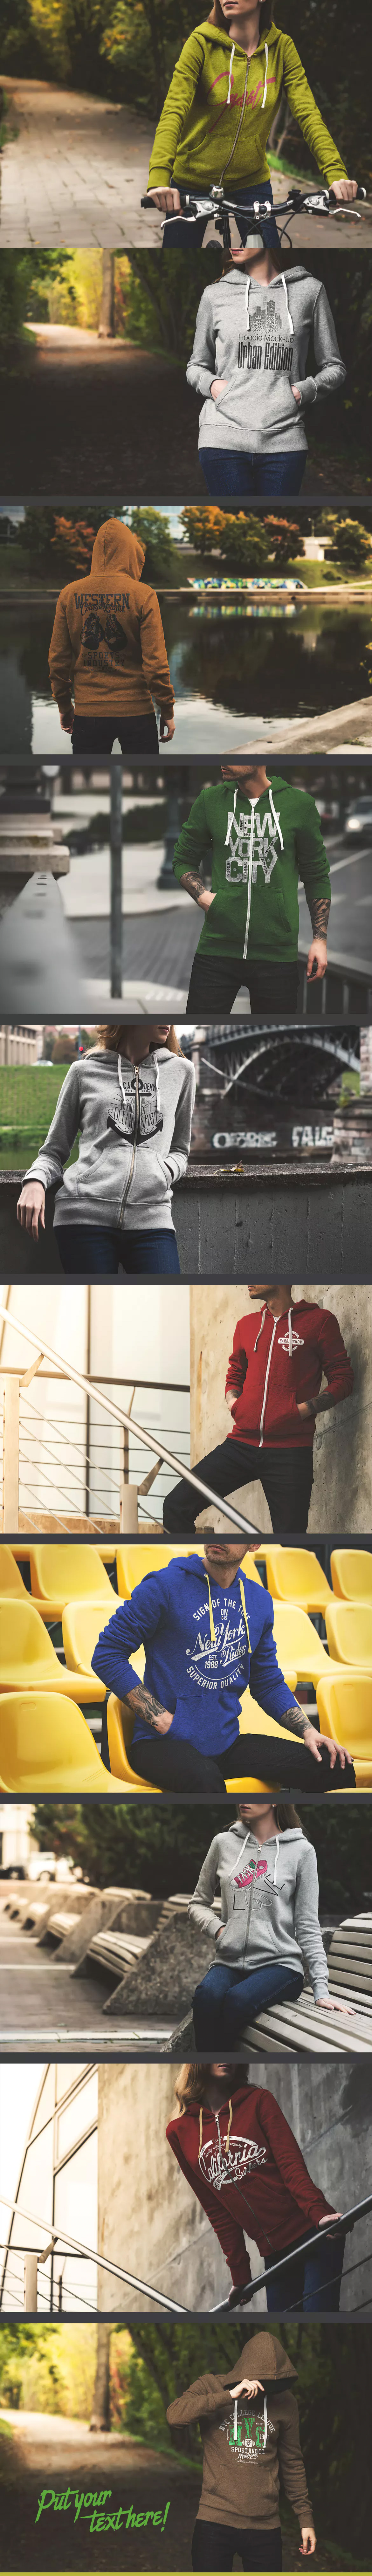 Download Hoodie Mock Up Urban Edition By Genetic96 On Envato Elements Envato Mockup Elements